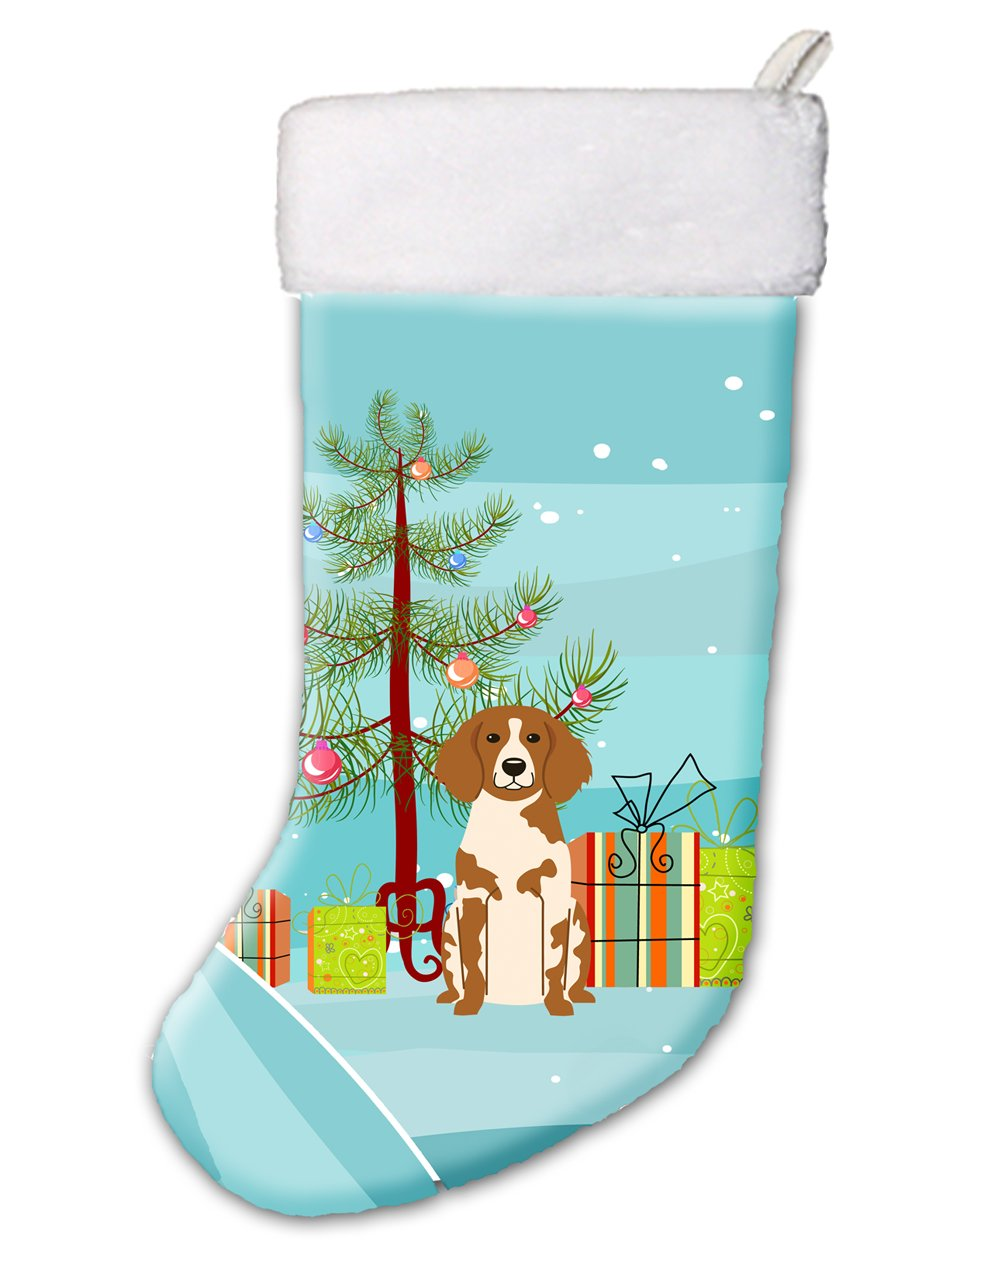 Caroline's Treasures Merry Christmas Tree Brittany Spaniel Stocking, Large, Multicolor by Caroline's Treasures (Image #1)